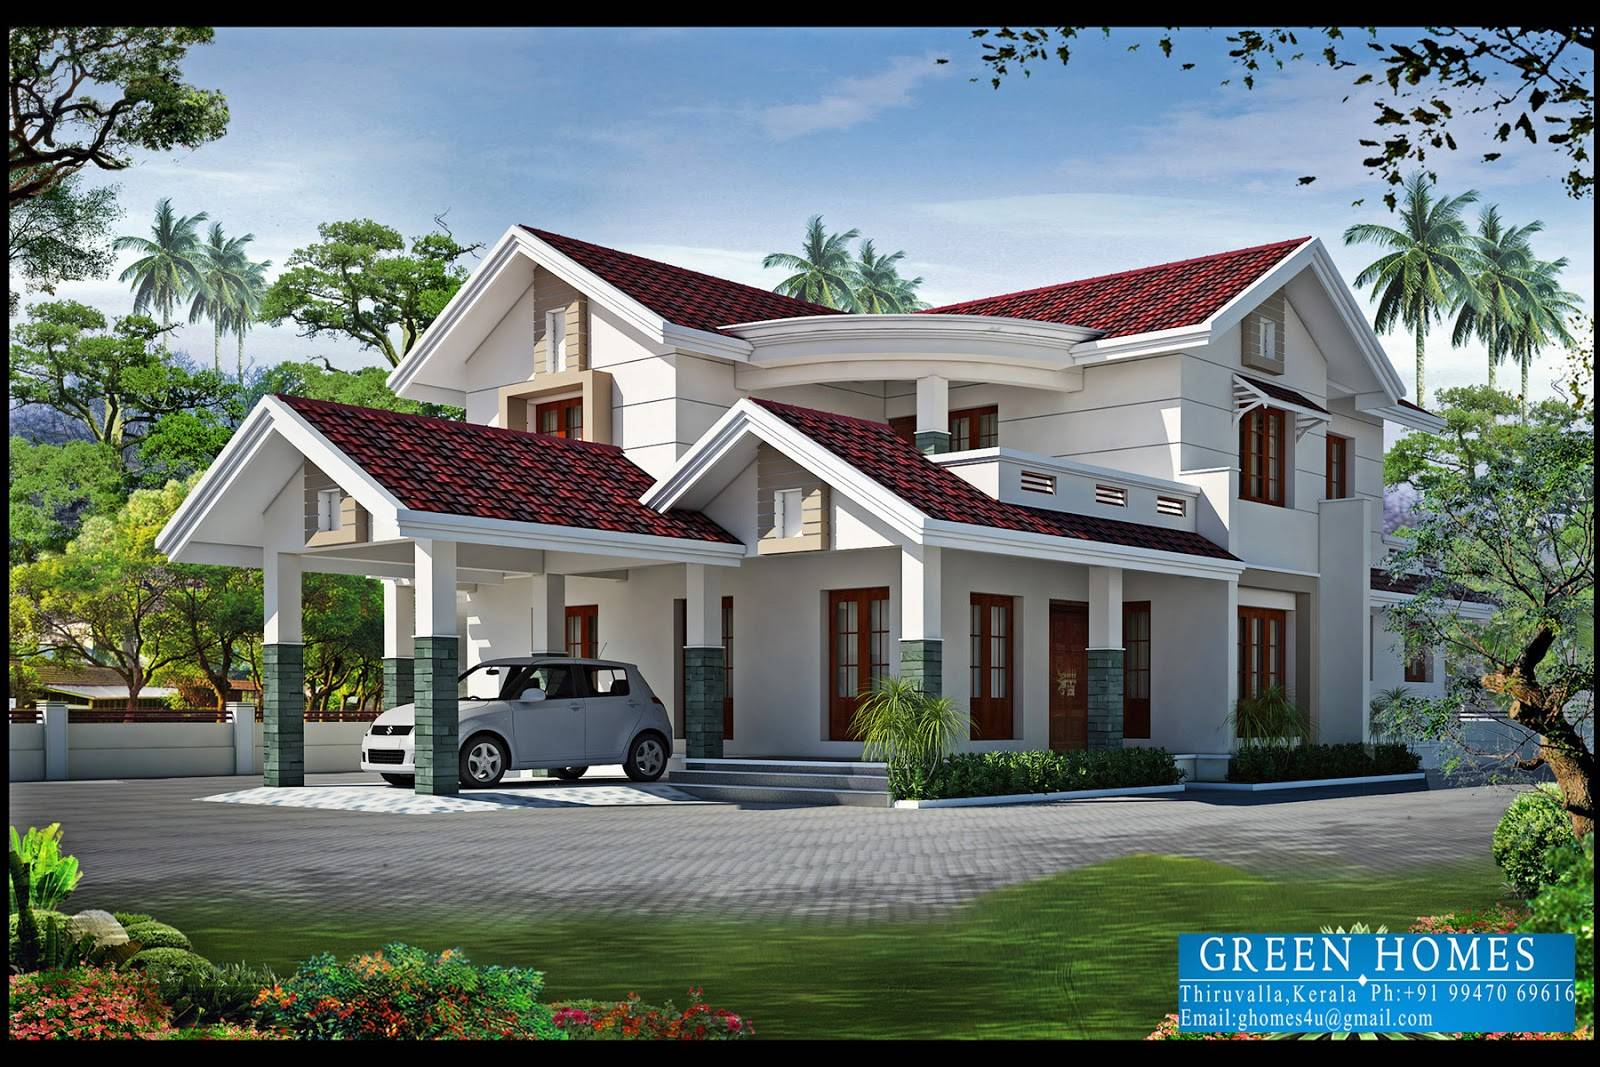 green homes bhk kerala home design feet kaf mobile homes new home designs pictures india - New Home Designs